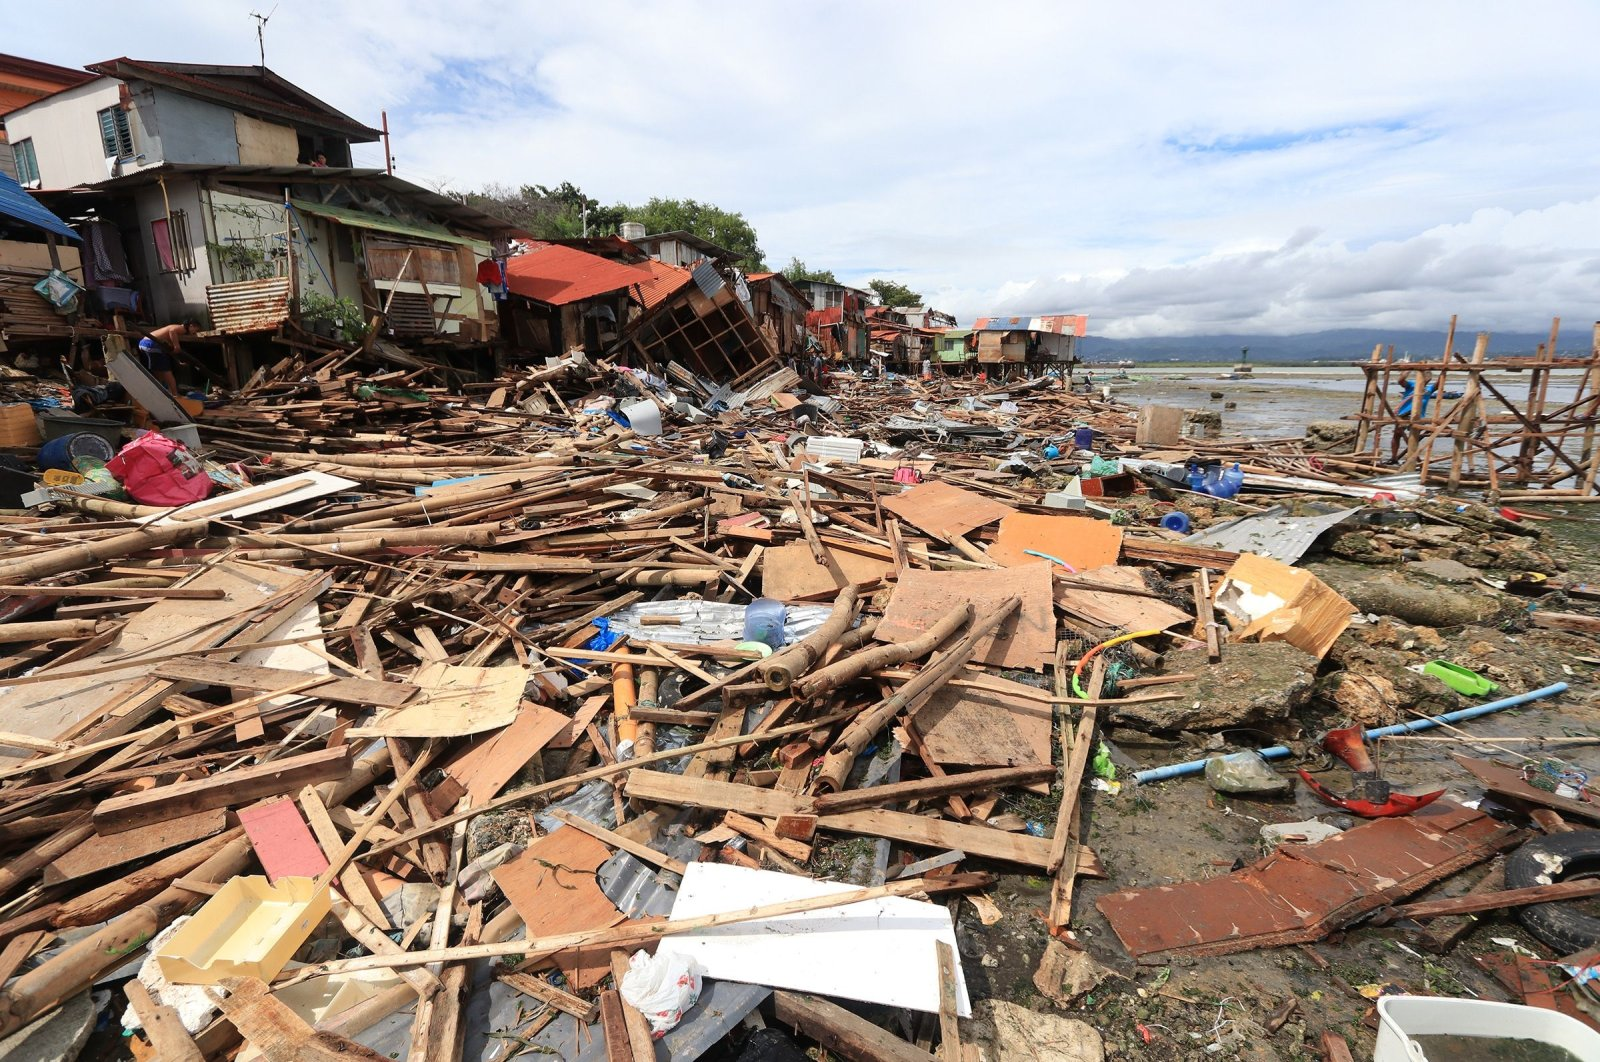 Houses destroyed in Tropical Depression Vicky in Lapu-Lapu City on Cebu Island, Philippines, Dec. 19, 2020. (AFP Photo)